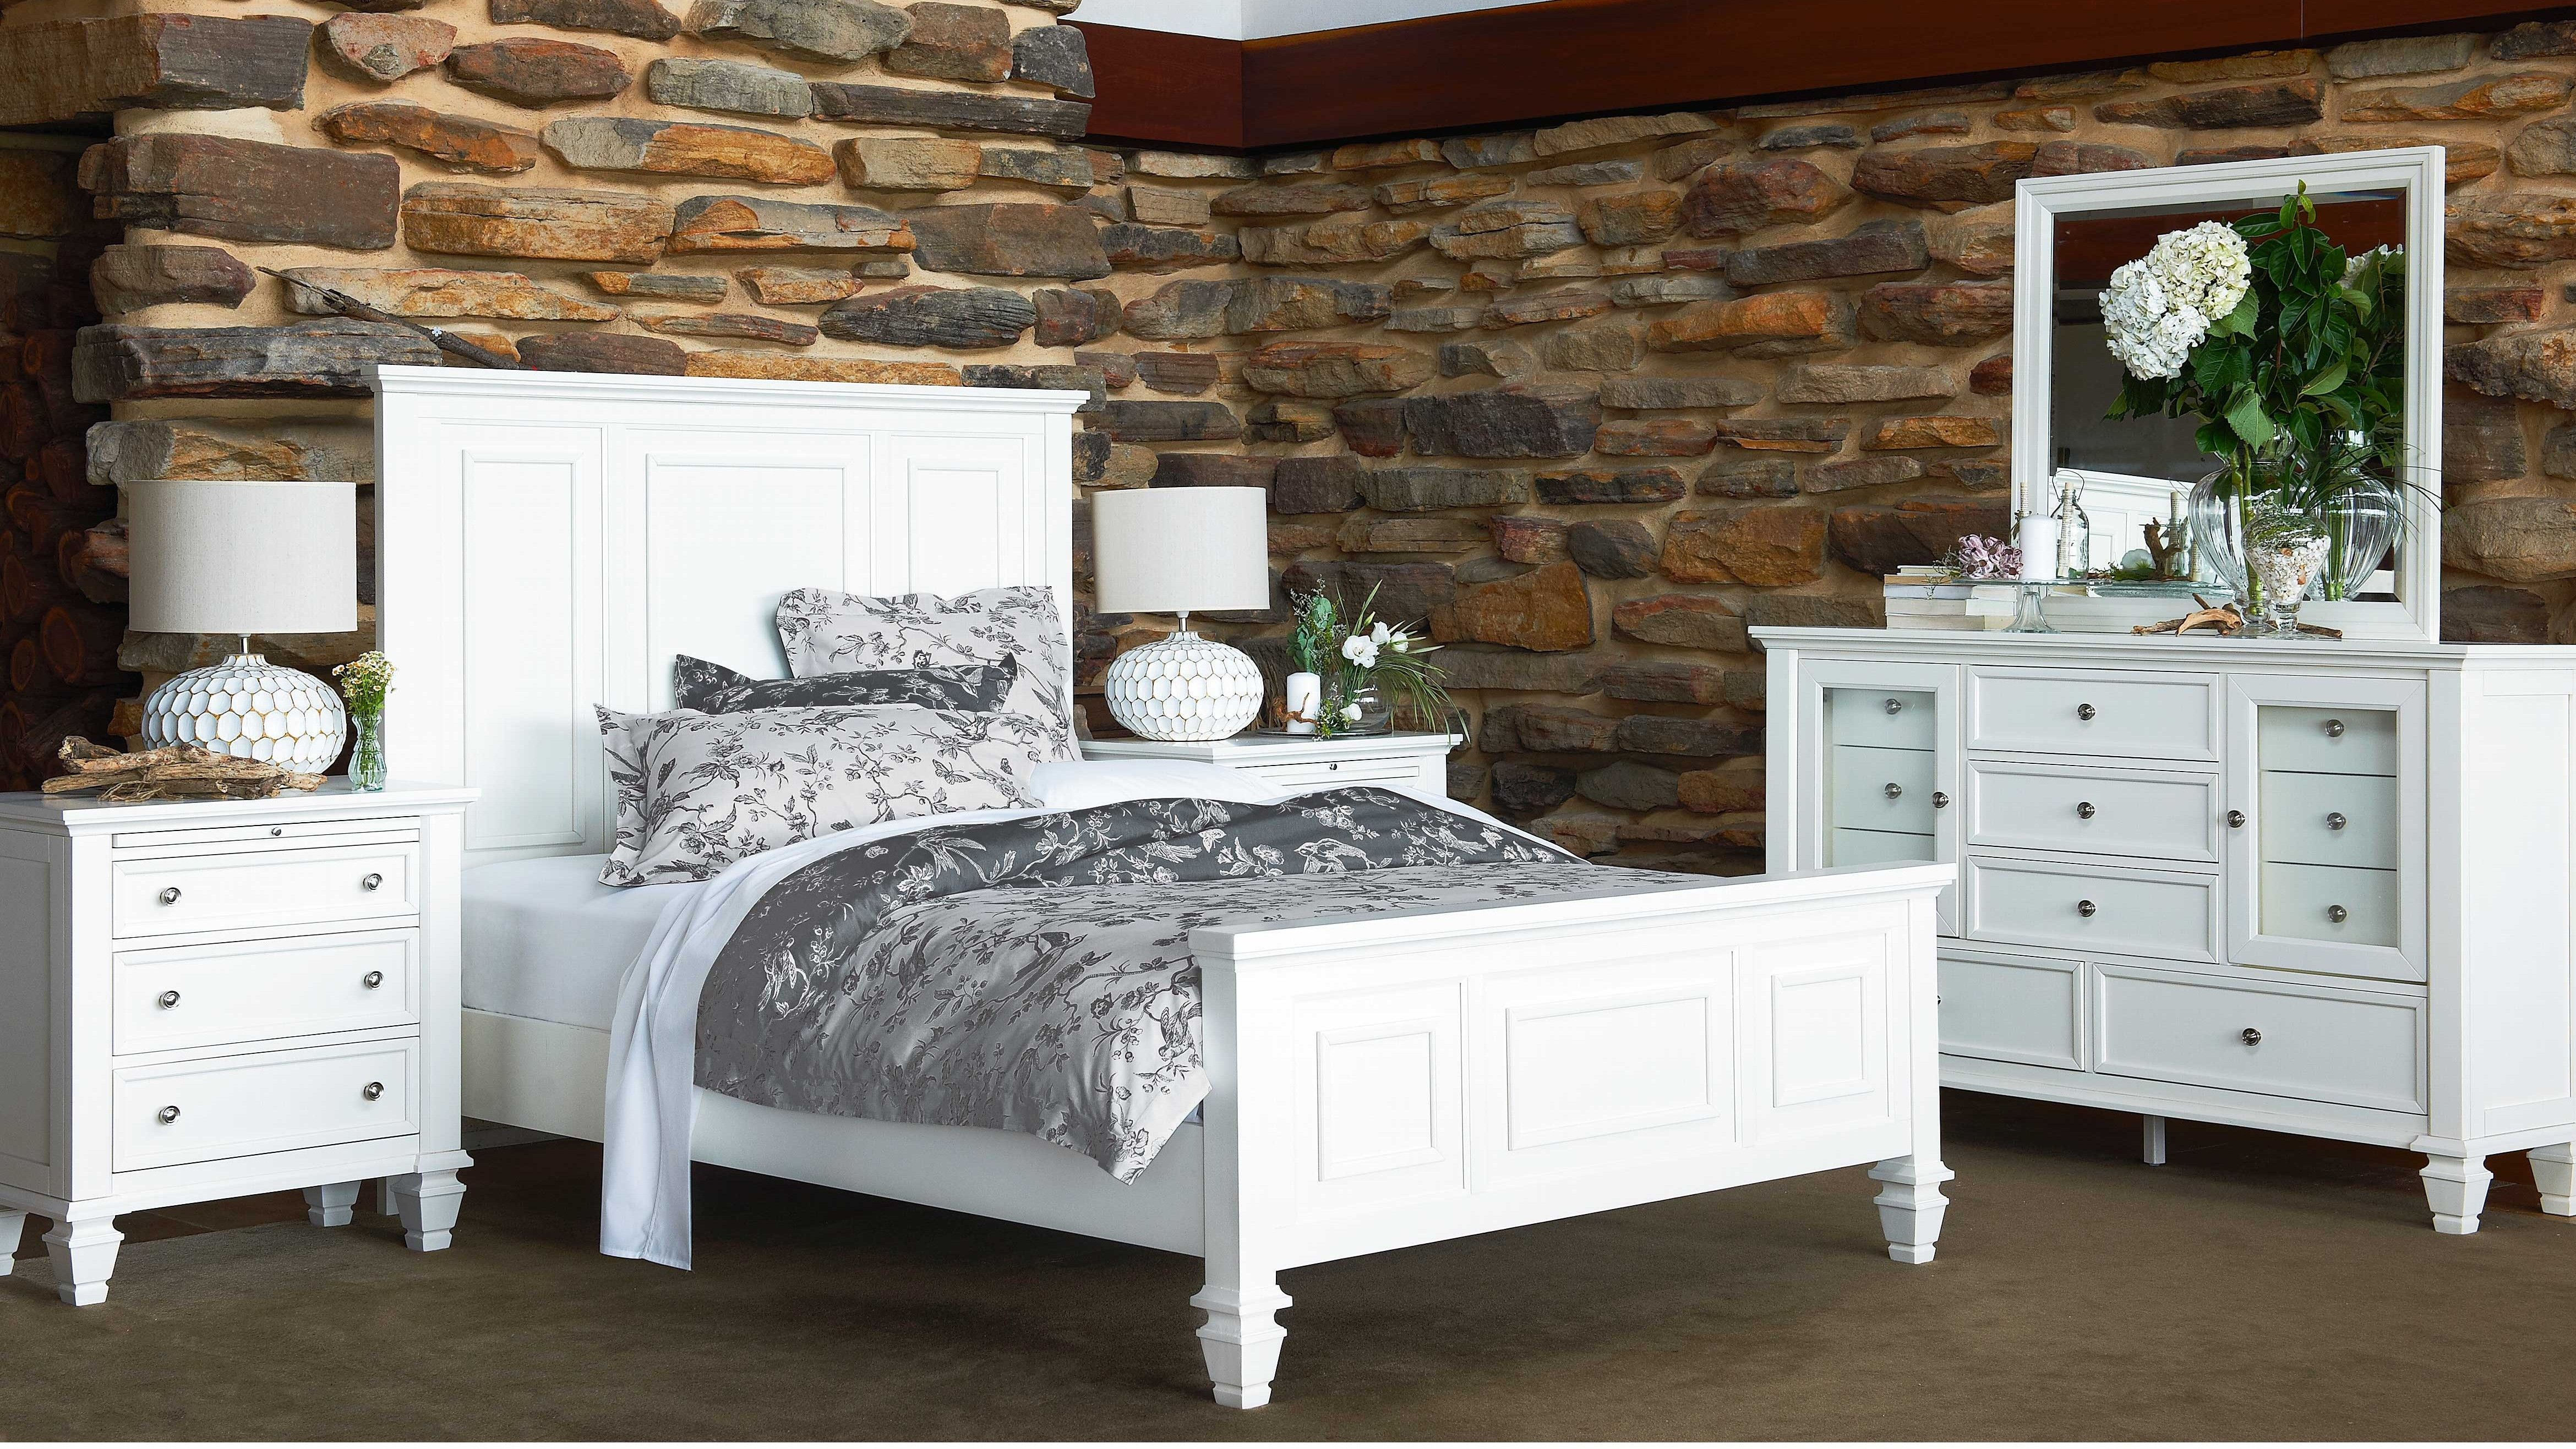 Glenmore 4 Piece Queen Bedroom Suite With Dresser For The Home